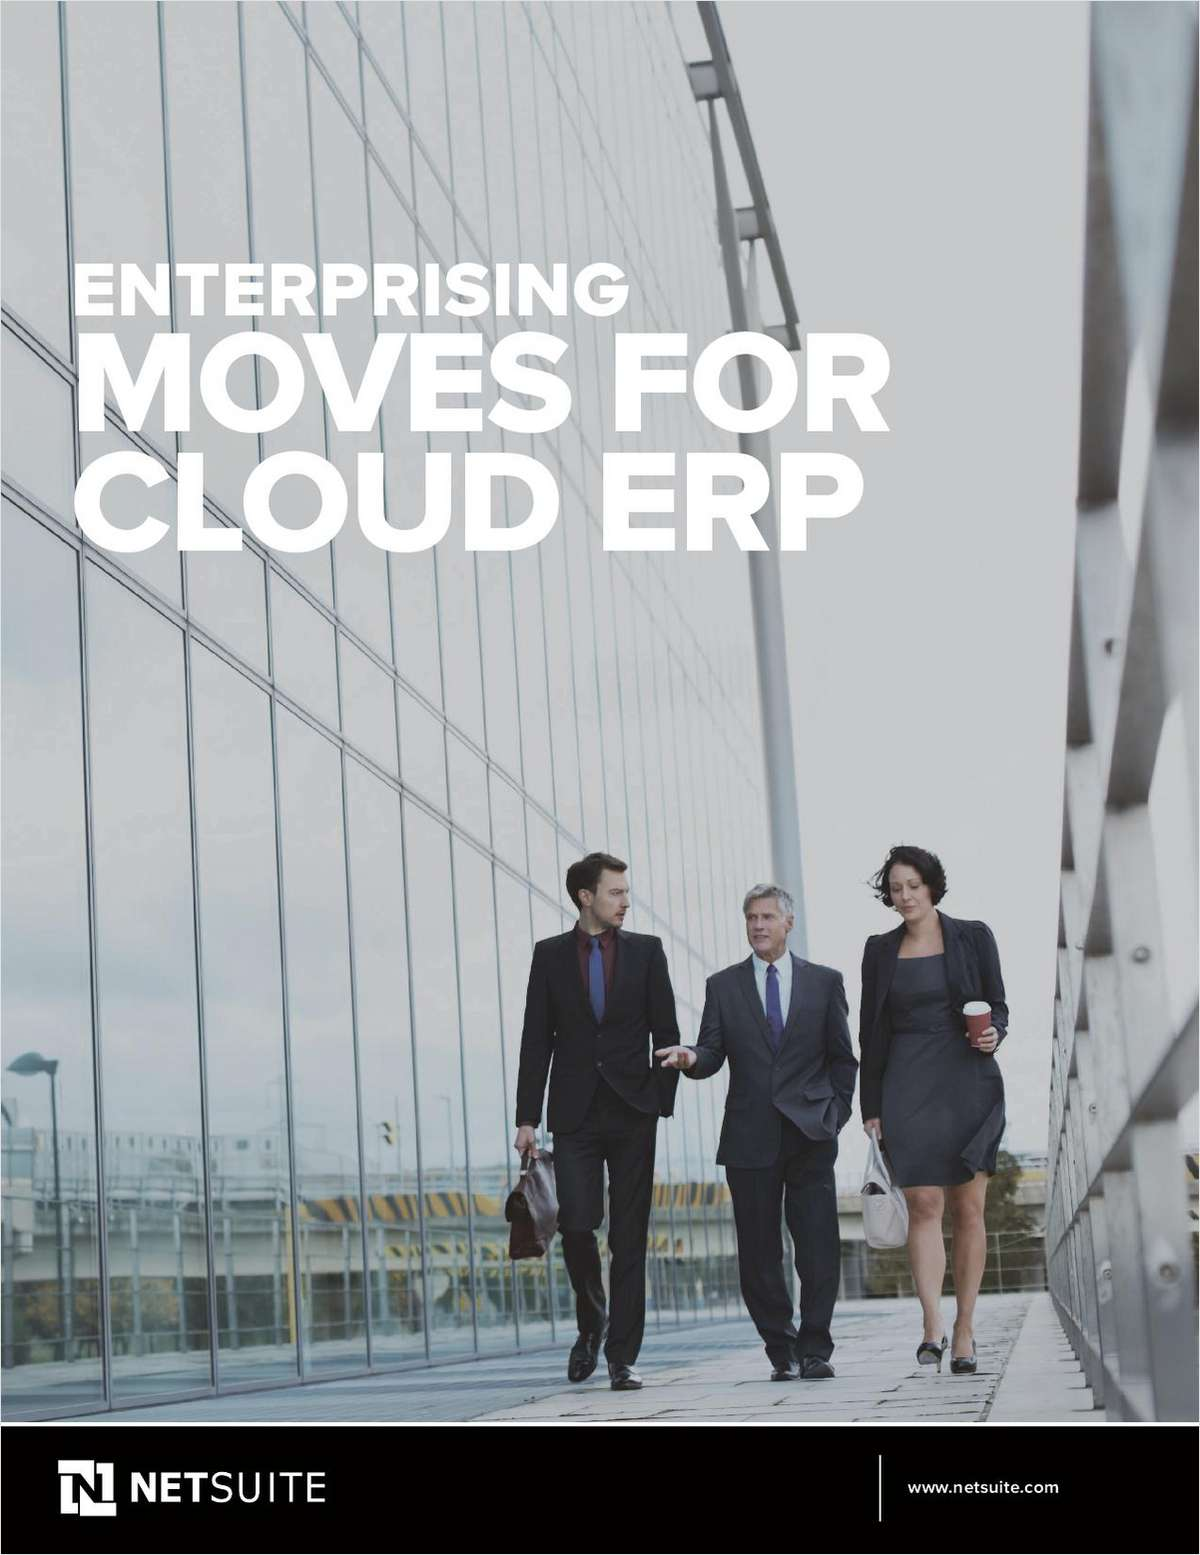 Enterprising Moves for Cloud ERP